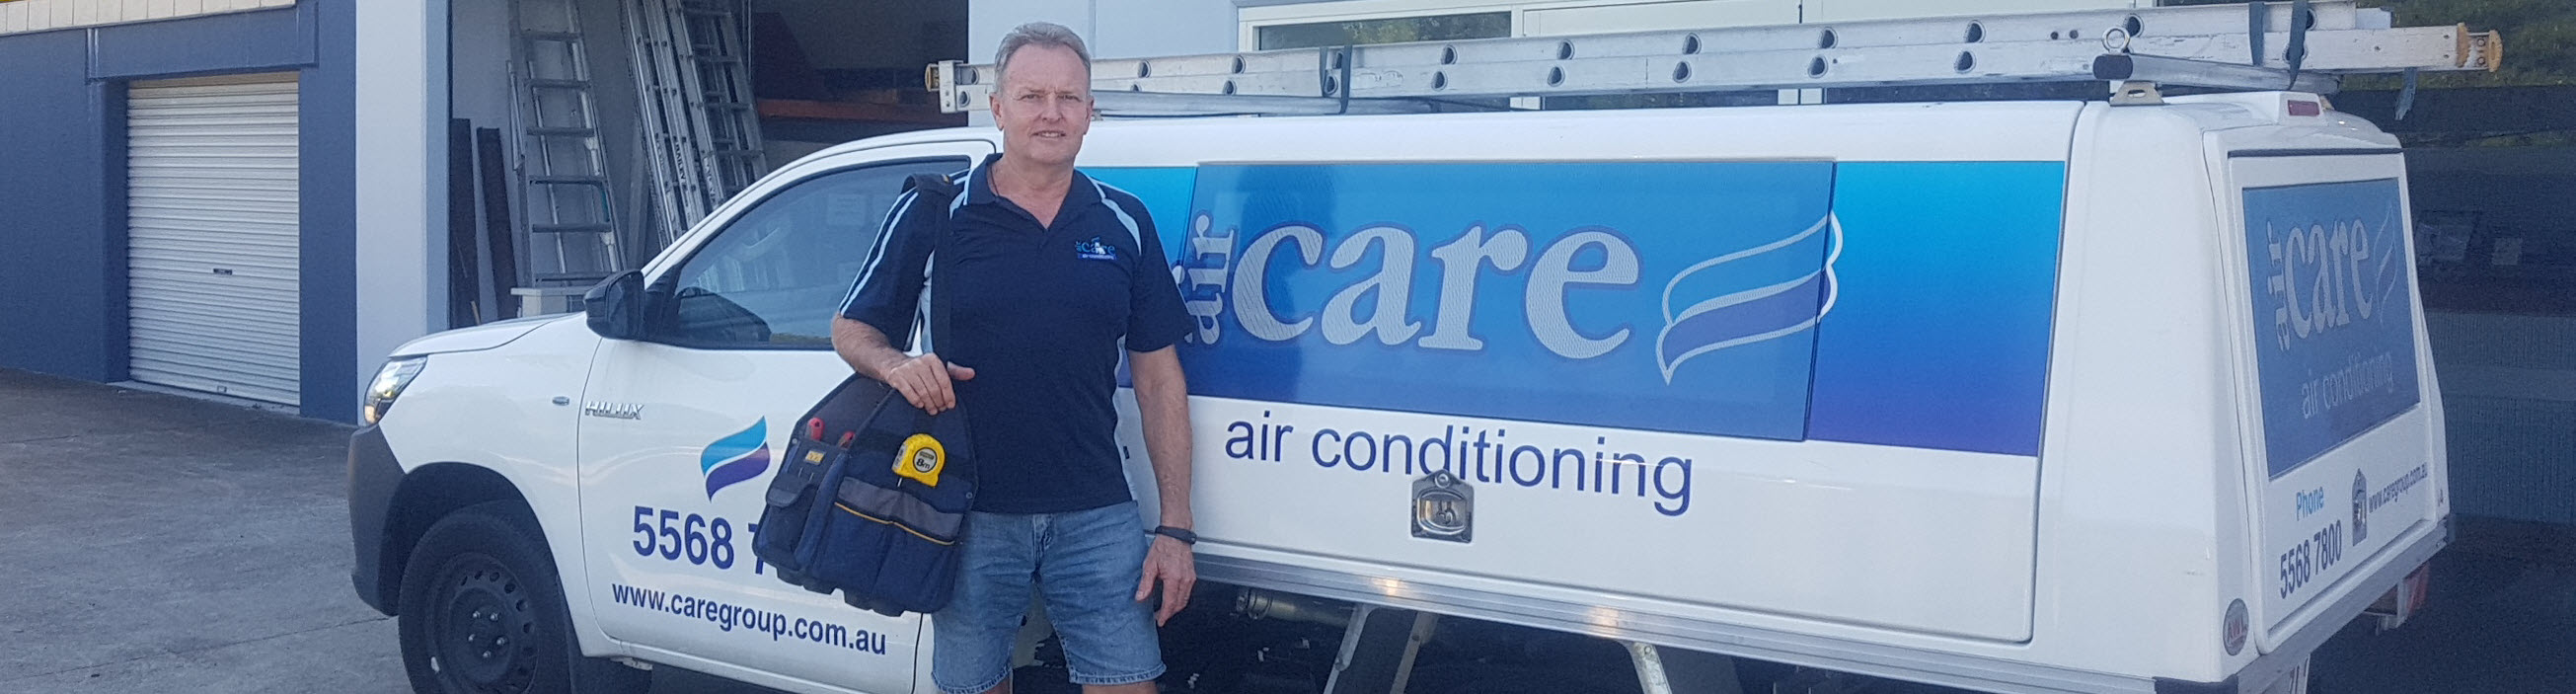 Commercial Air Conditioning Biggera Waters